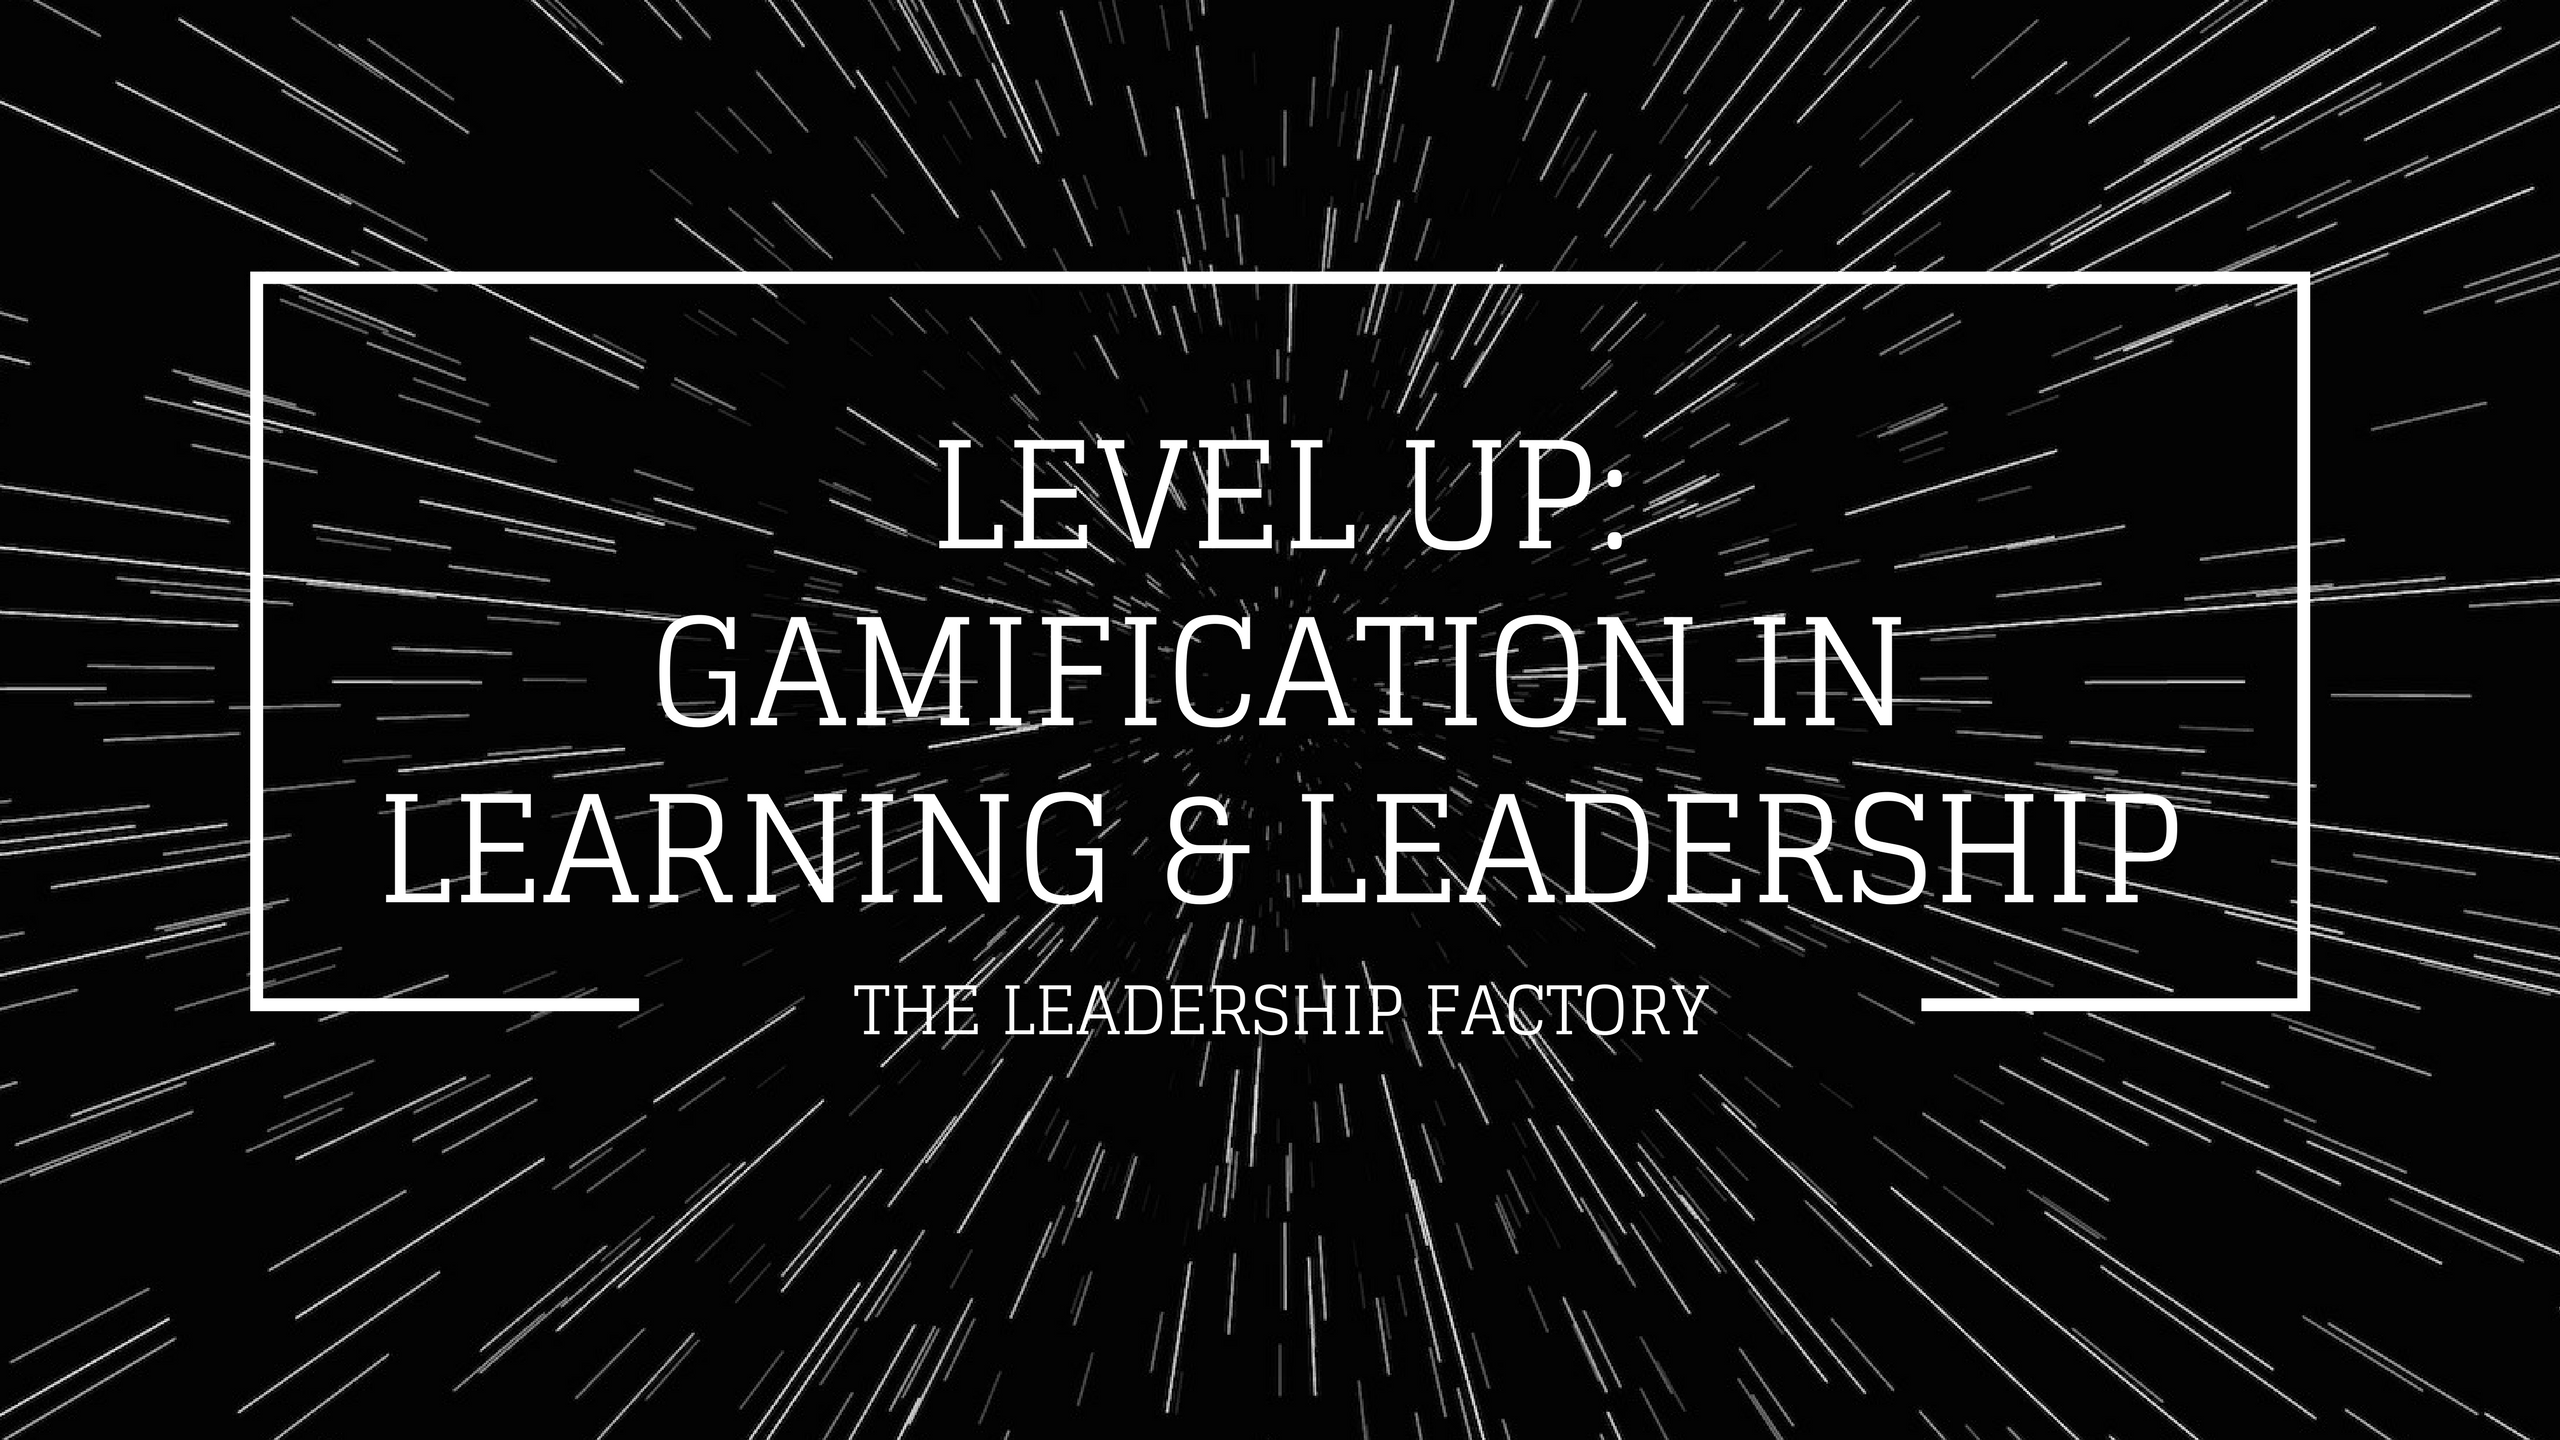 Level Up: Gamification in Learning & Leadersh